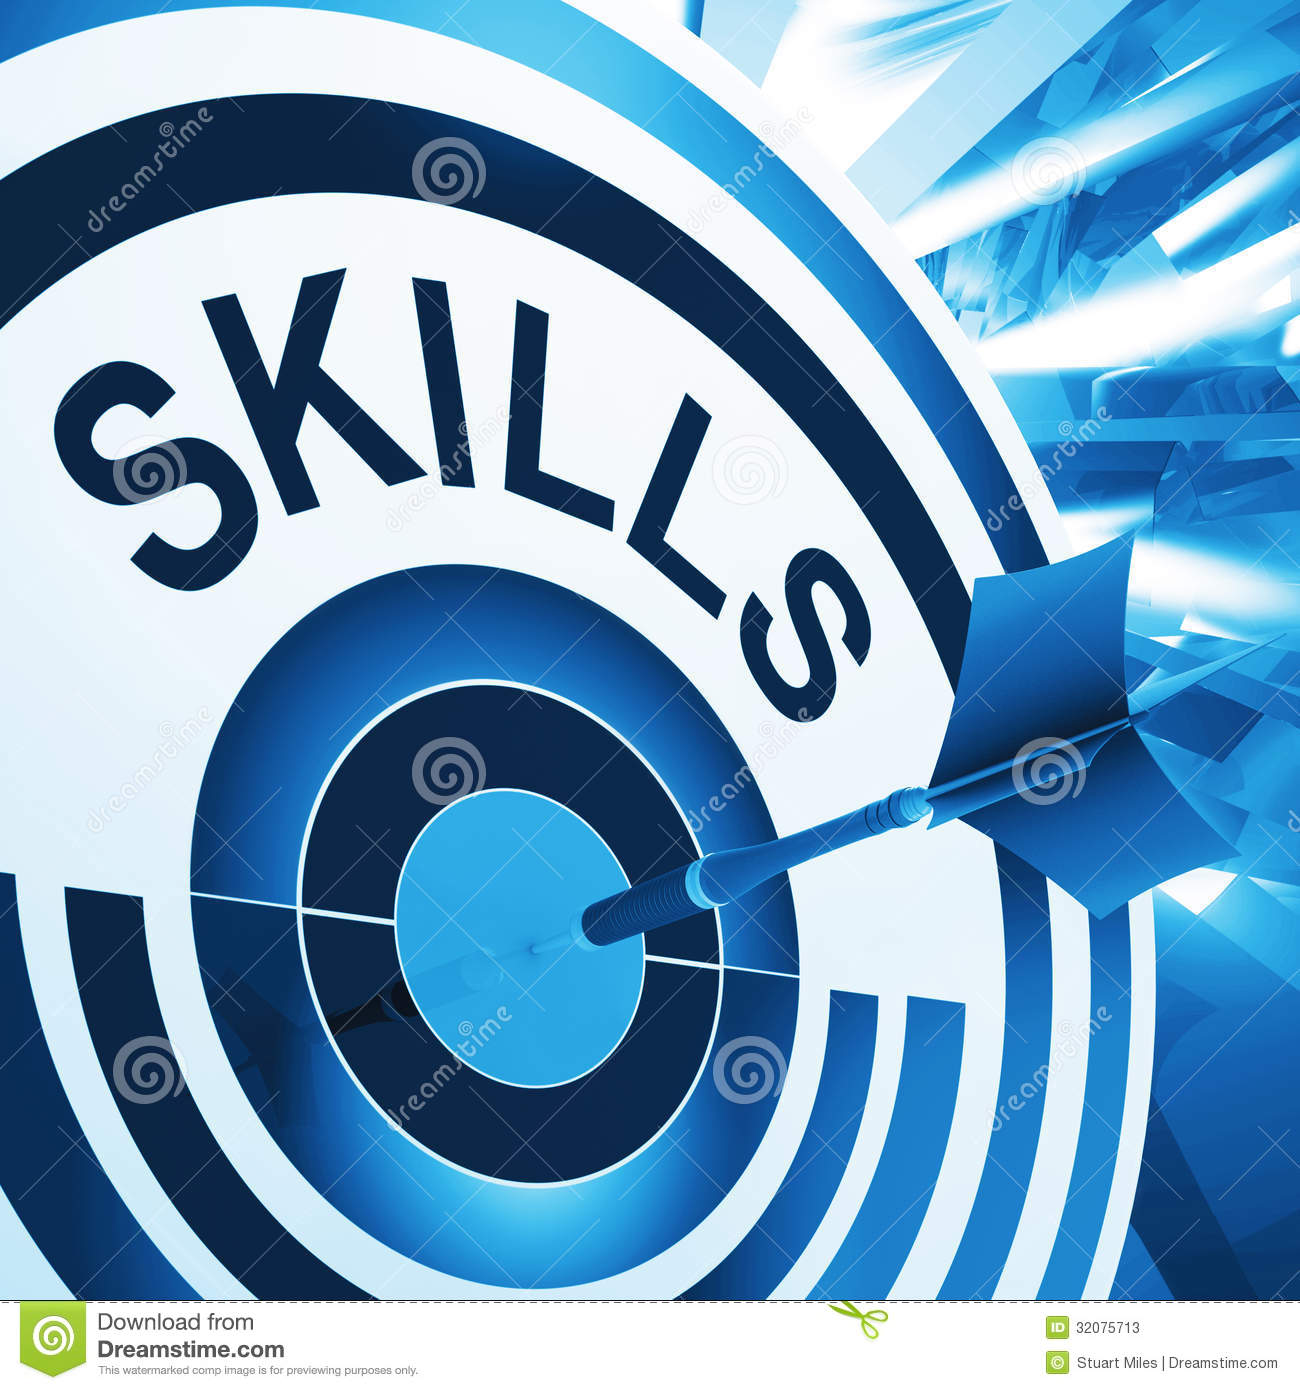 skills target means aptitude competence and abilities stock skills target means aptitude competence and abilities